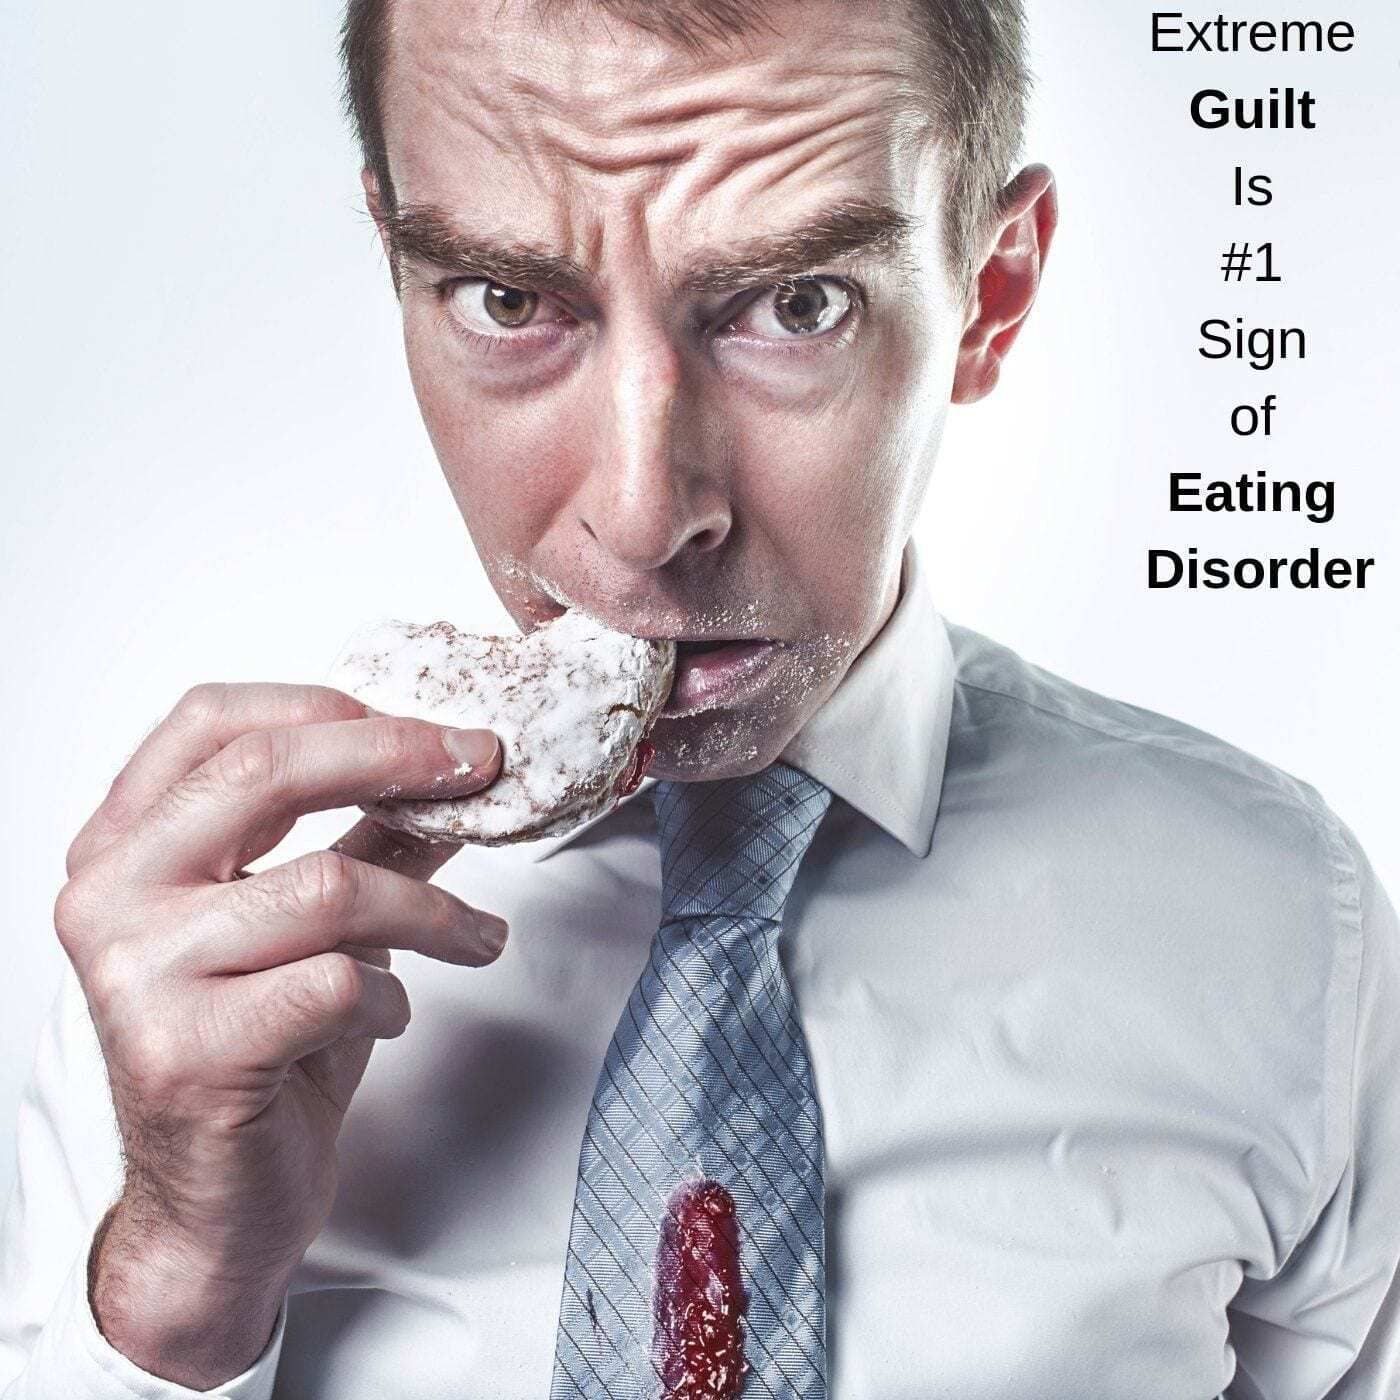 picture of man guiltily eating donut for Bulimia with quote saying extreme guilt is the #1 sign of eating disorder